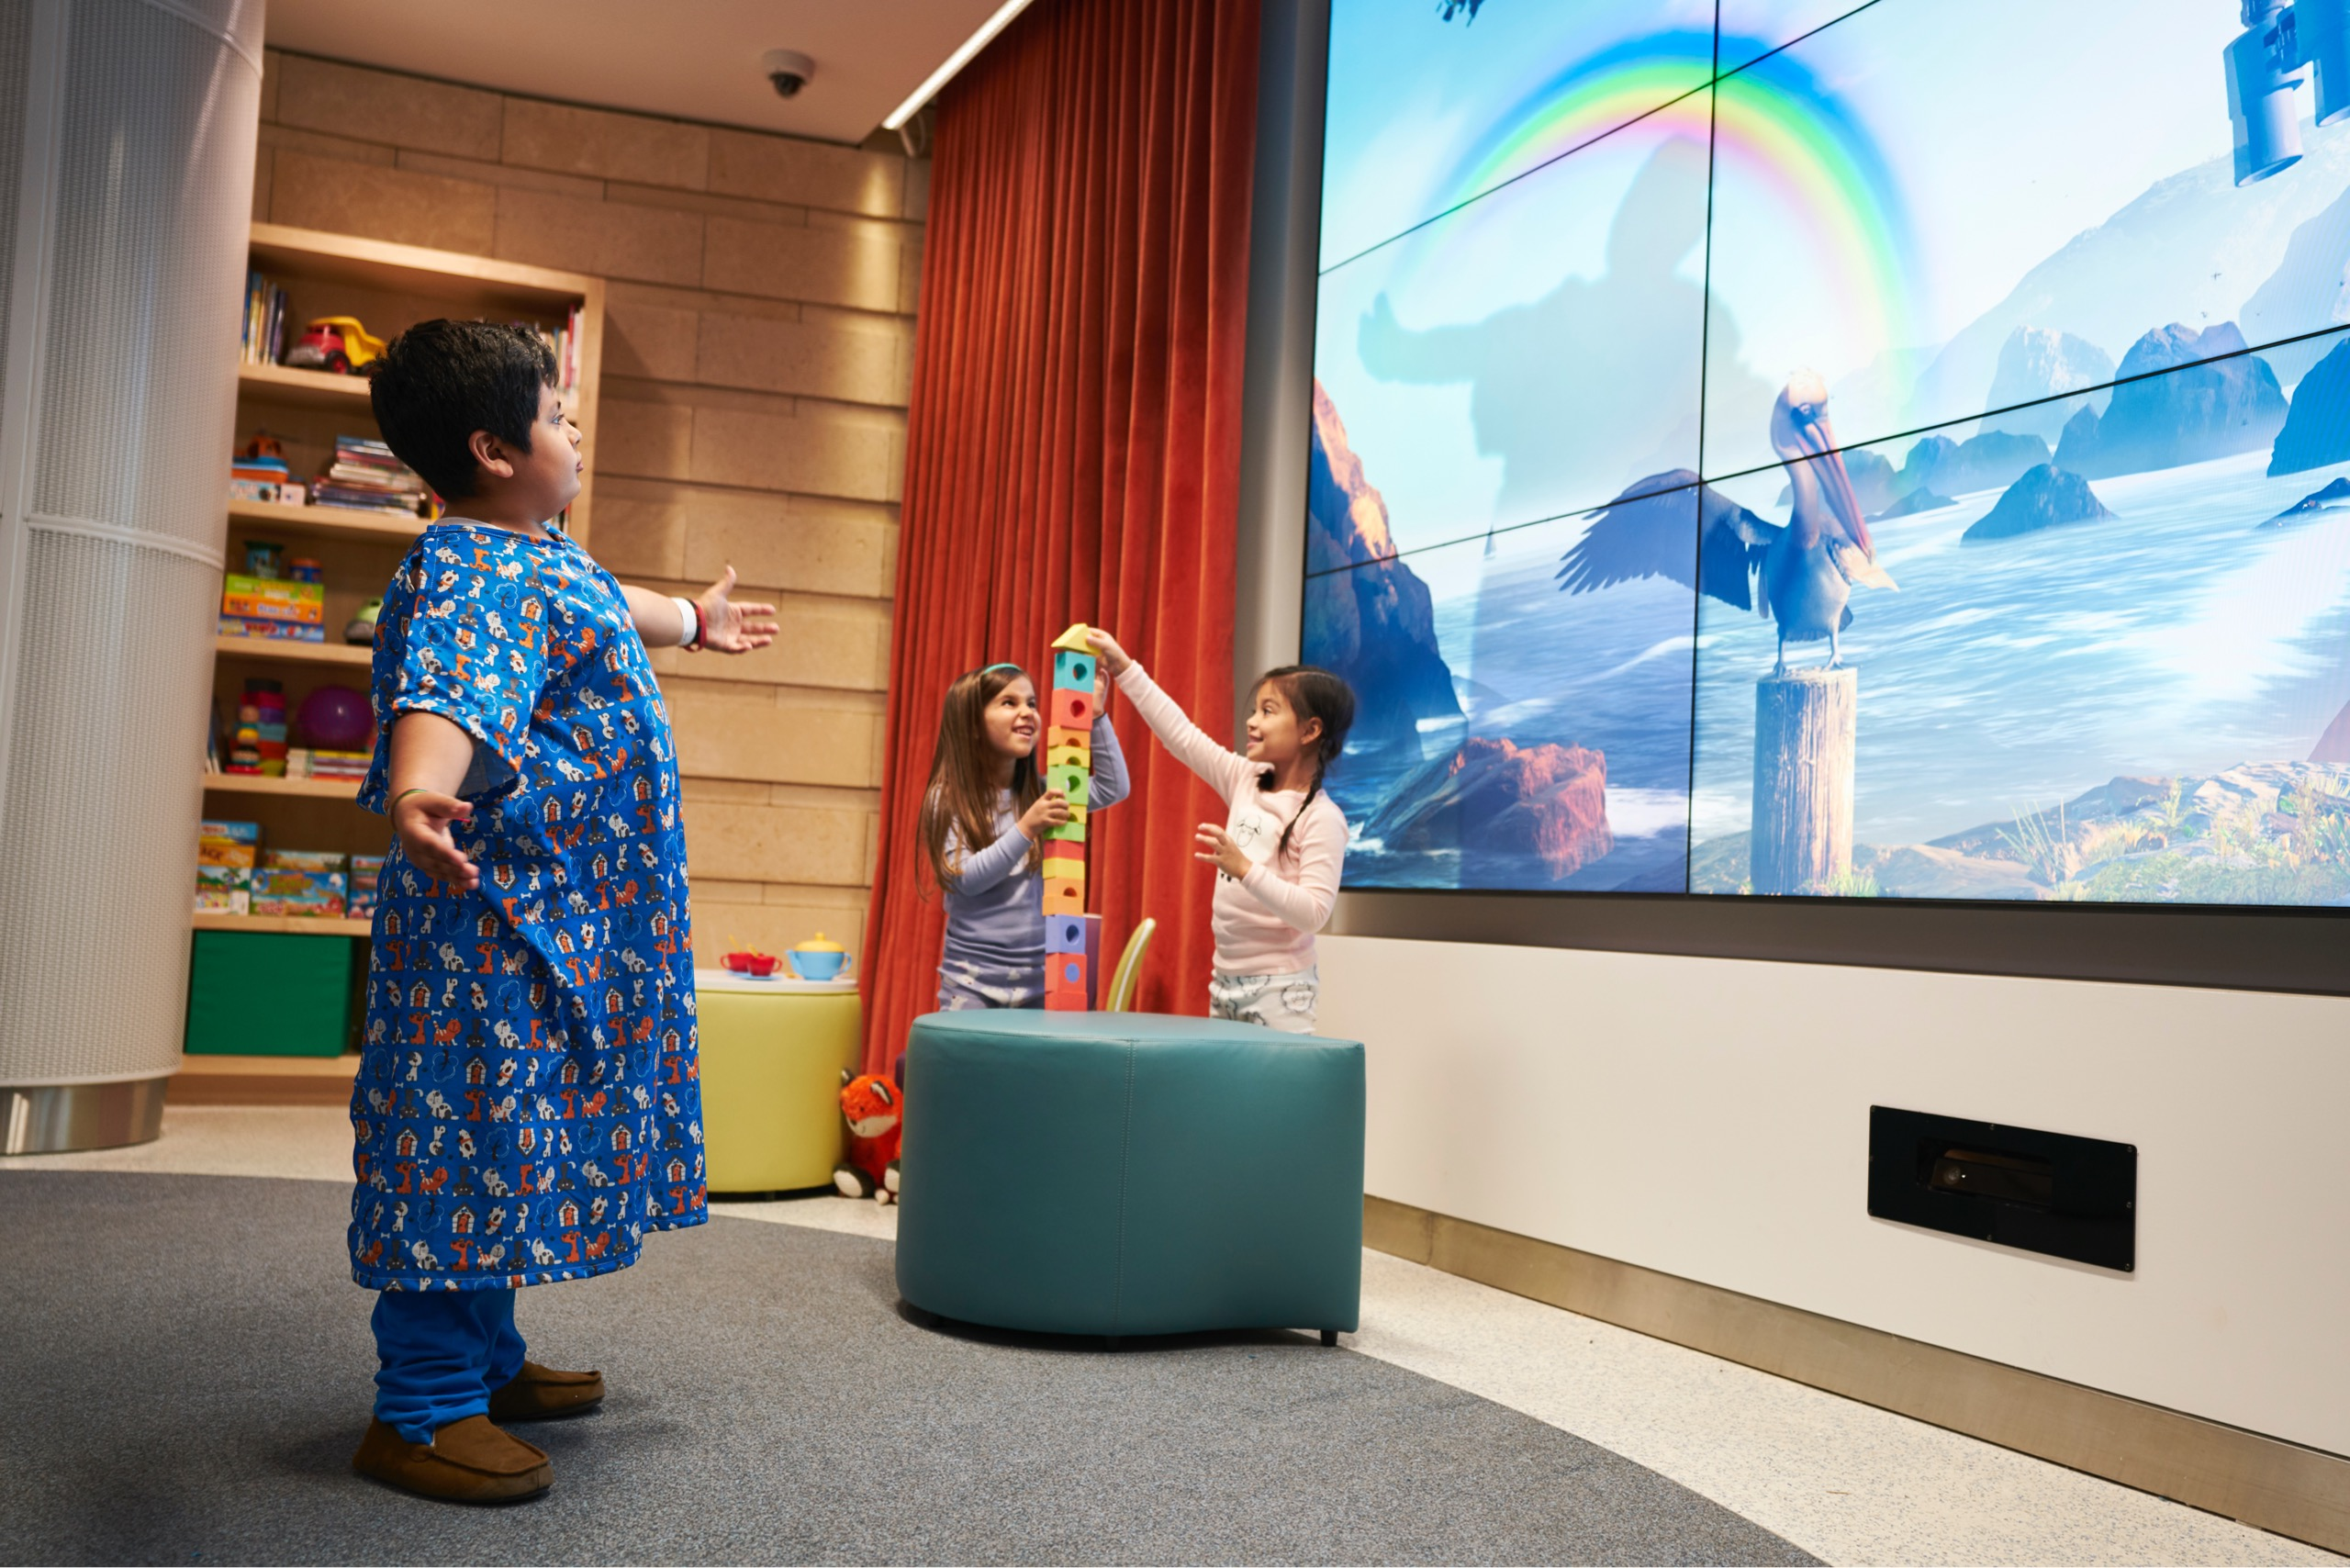 A kid in robe playing with rainbow on interactive video wall at Lucile Packard Children's Hospital at Stanford